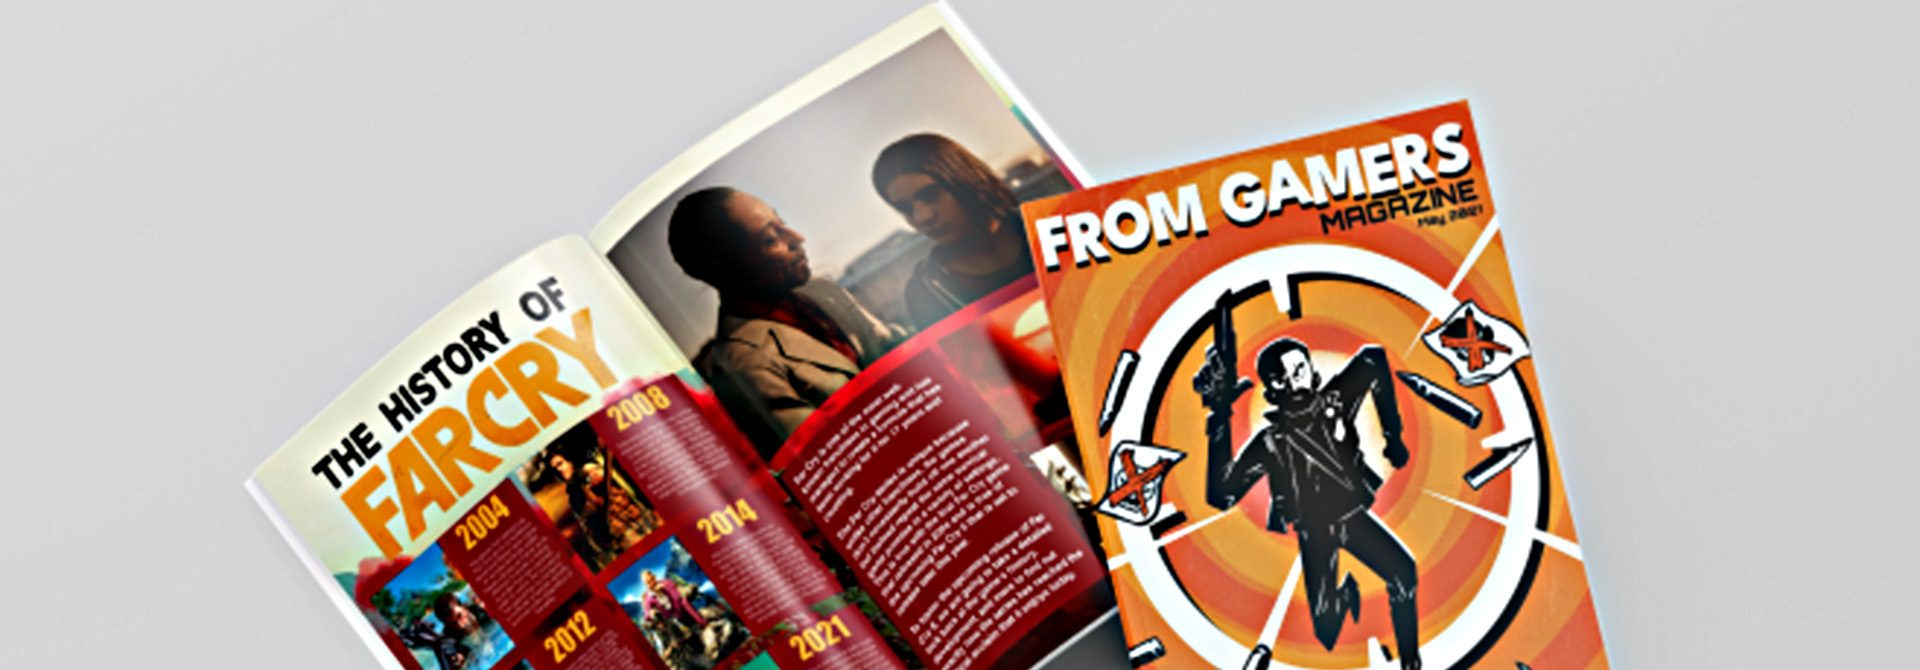 From Gamers Magazine Launches Kickstarter